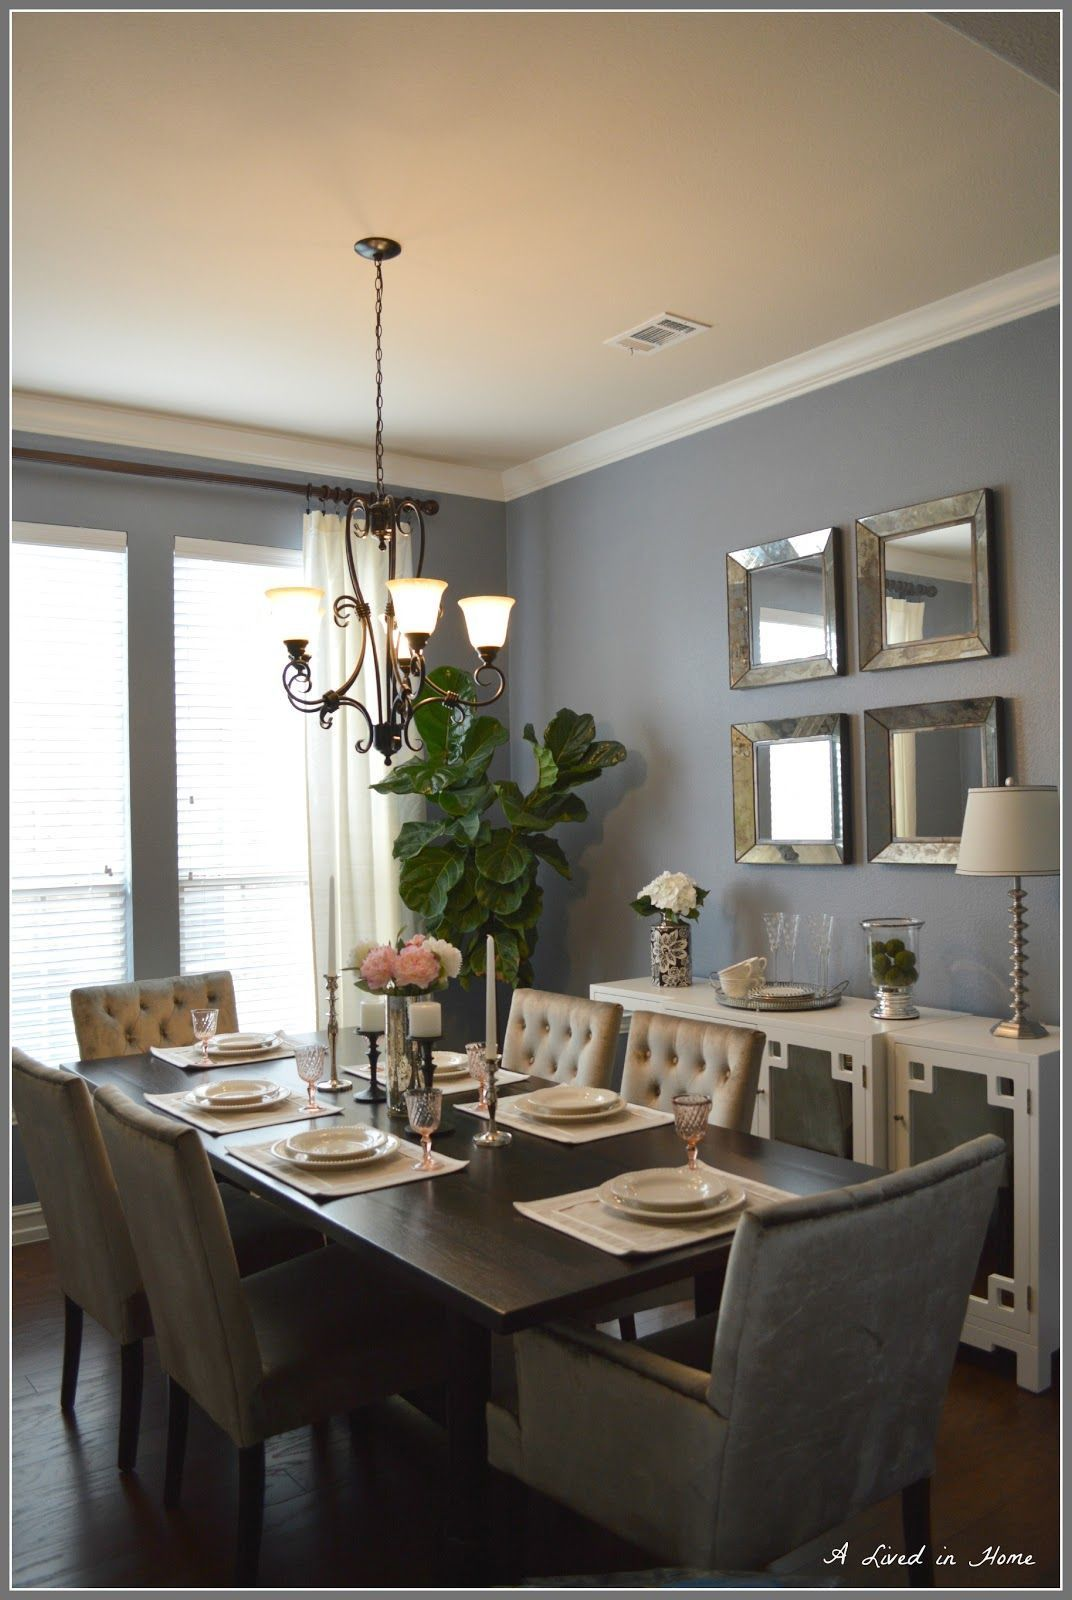 33 A Collection of Creative Dining Room Ideas [Beautiful] images